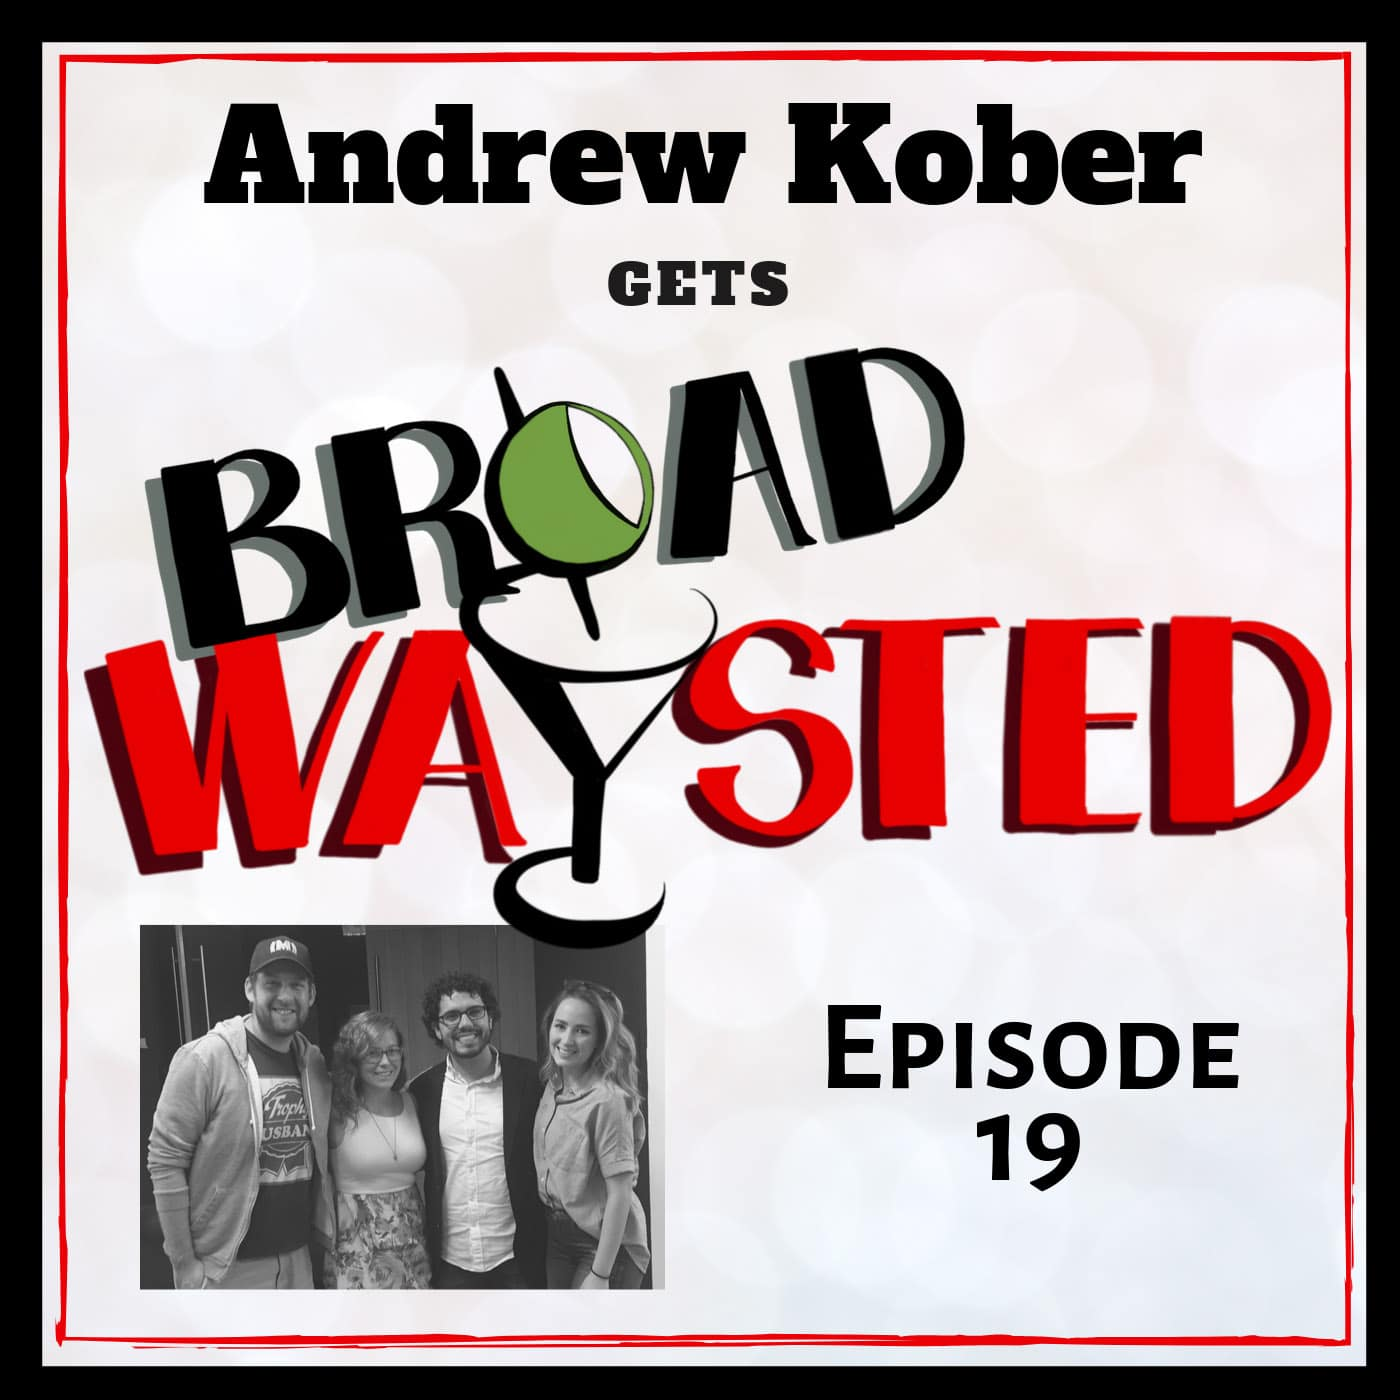 Broadwaysted Ep 19 Andrew Kober